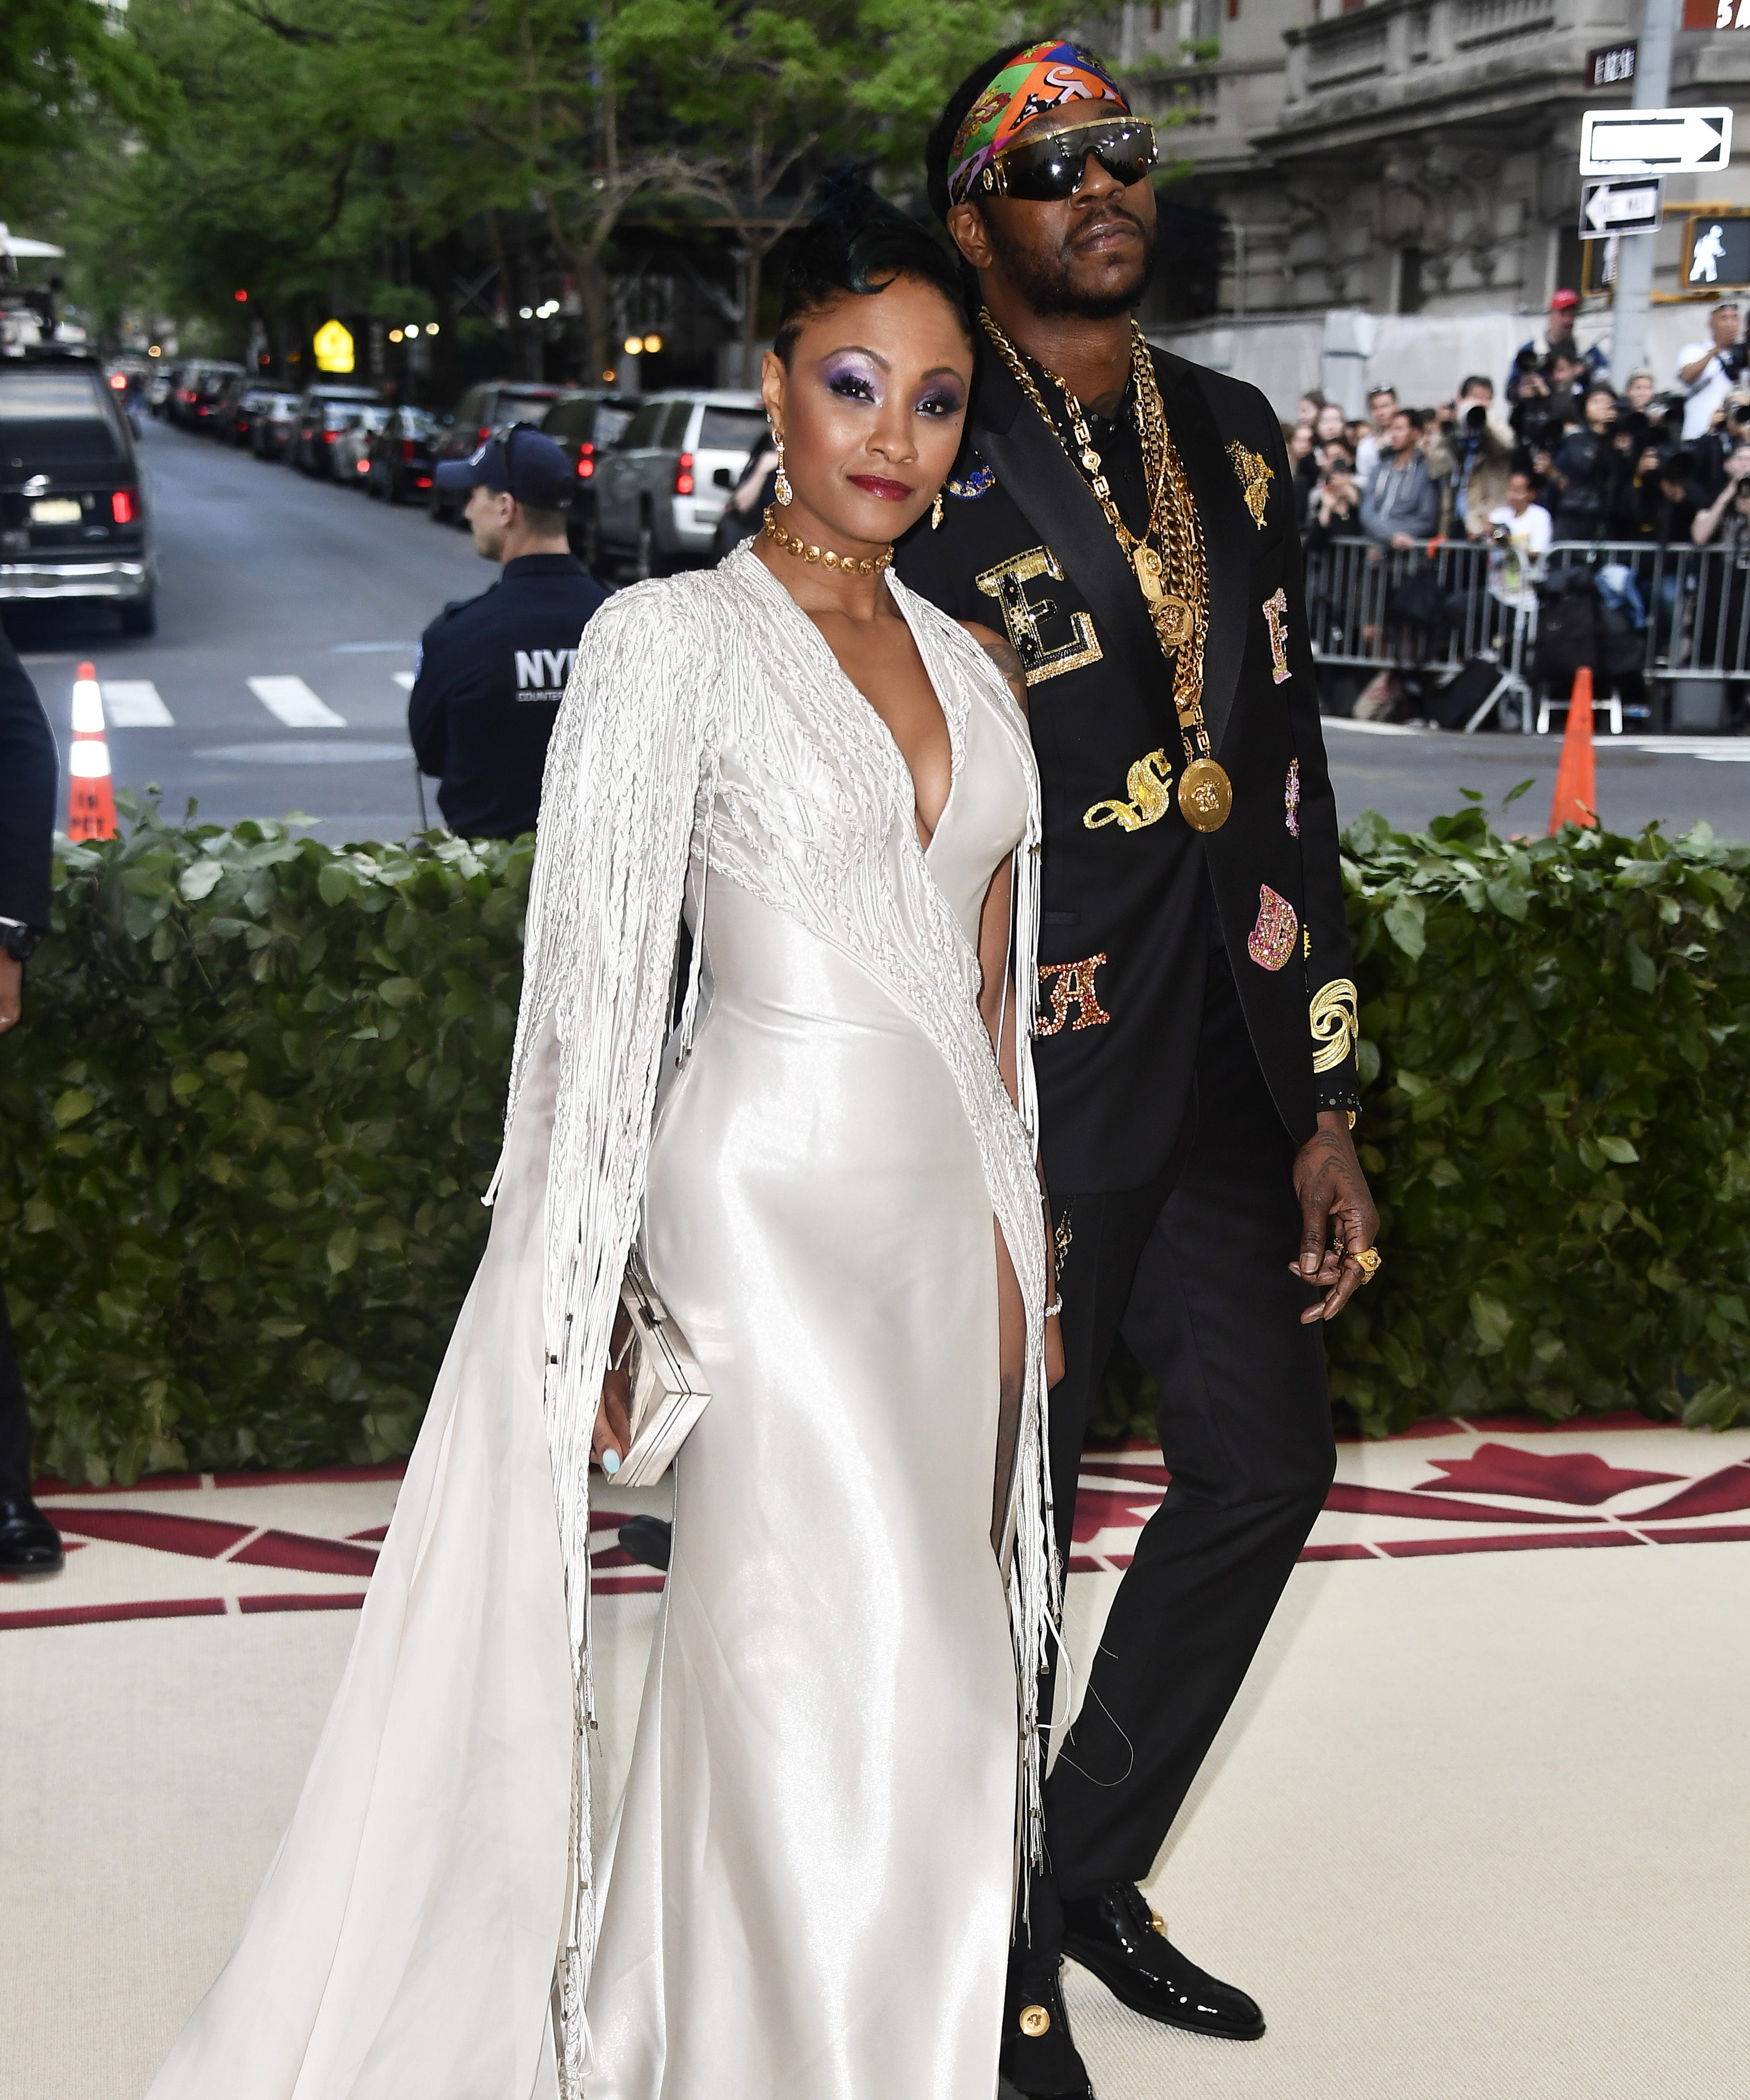 Met Gala 2018 Power Couples Who Ruled The Red Carpet